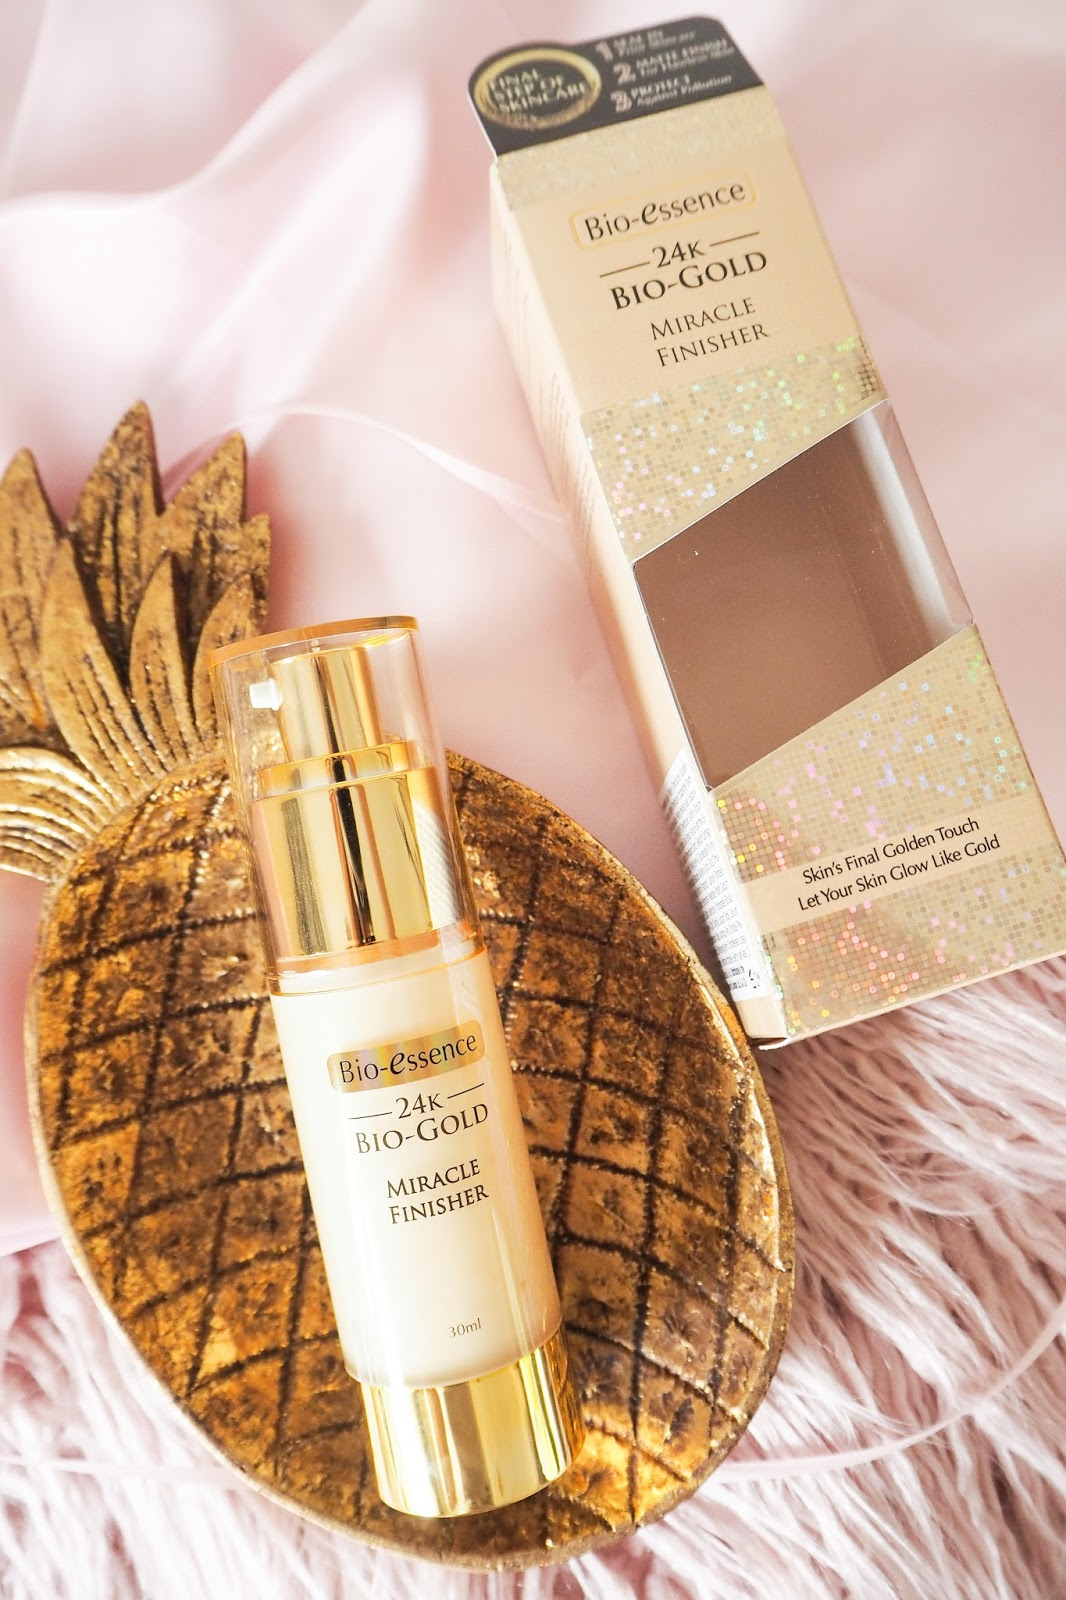 Bio-Essence 24k Bio-Gold Miracle Finisher Review